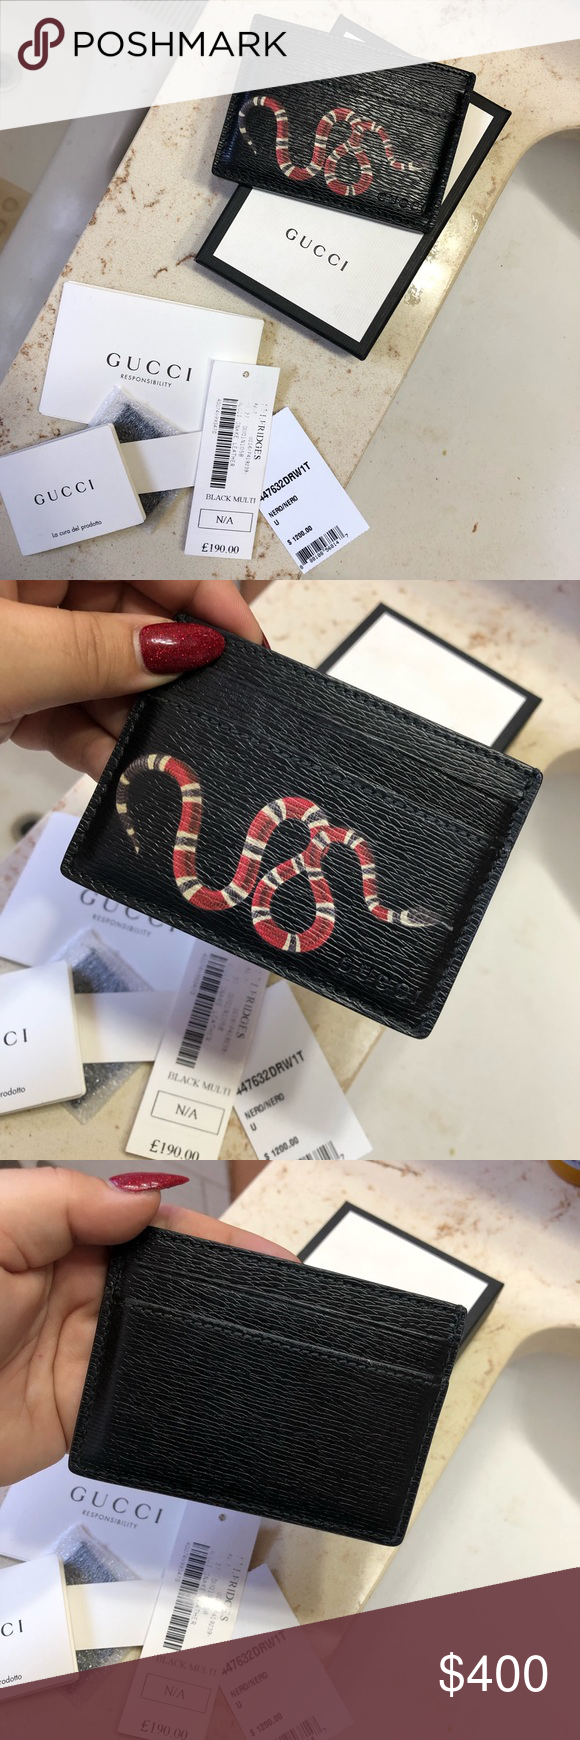 bcfd0bd5c5c1d8 Gucci card holder Gucci snake cardholder Super rare Purchased in the UK at  Selfridges Leather Like new condition Stitching is slightly fraying No  stretches ...